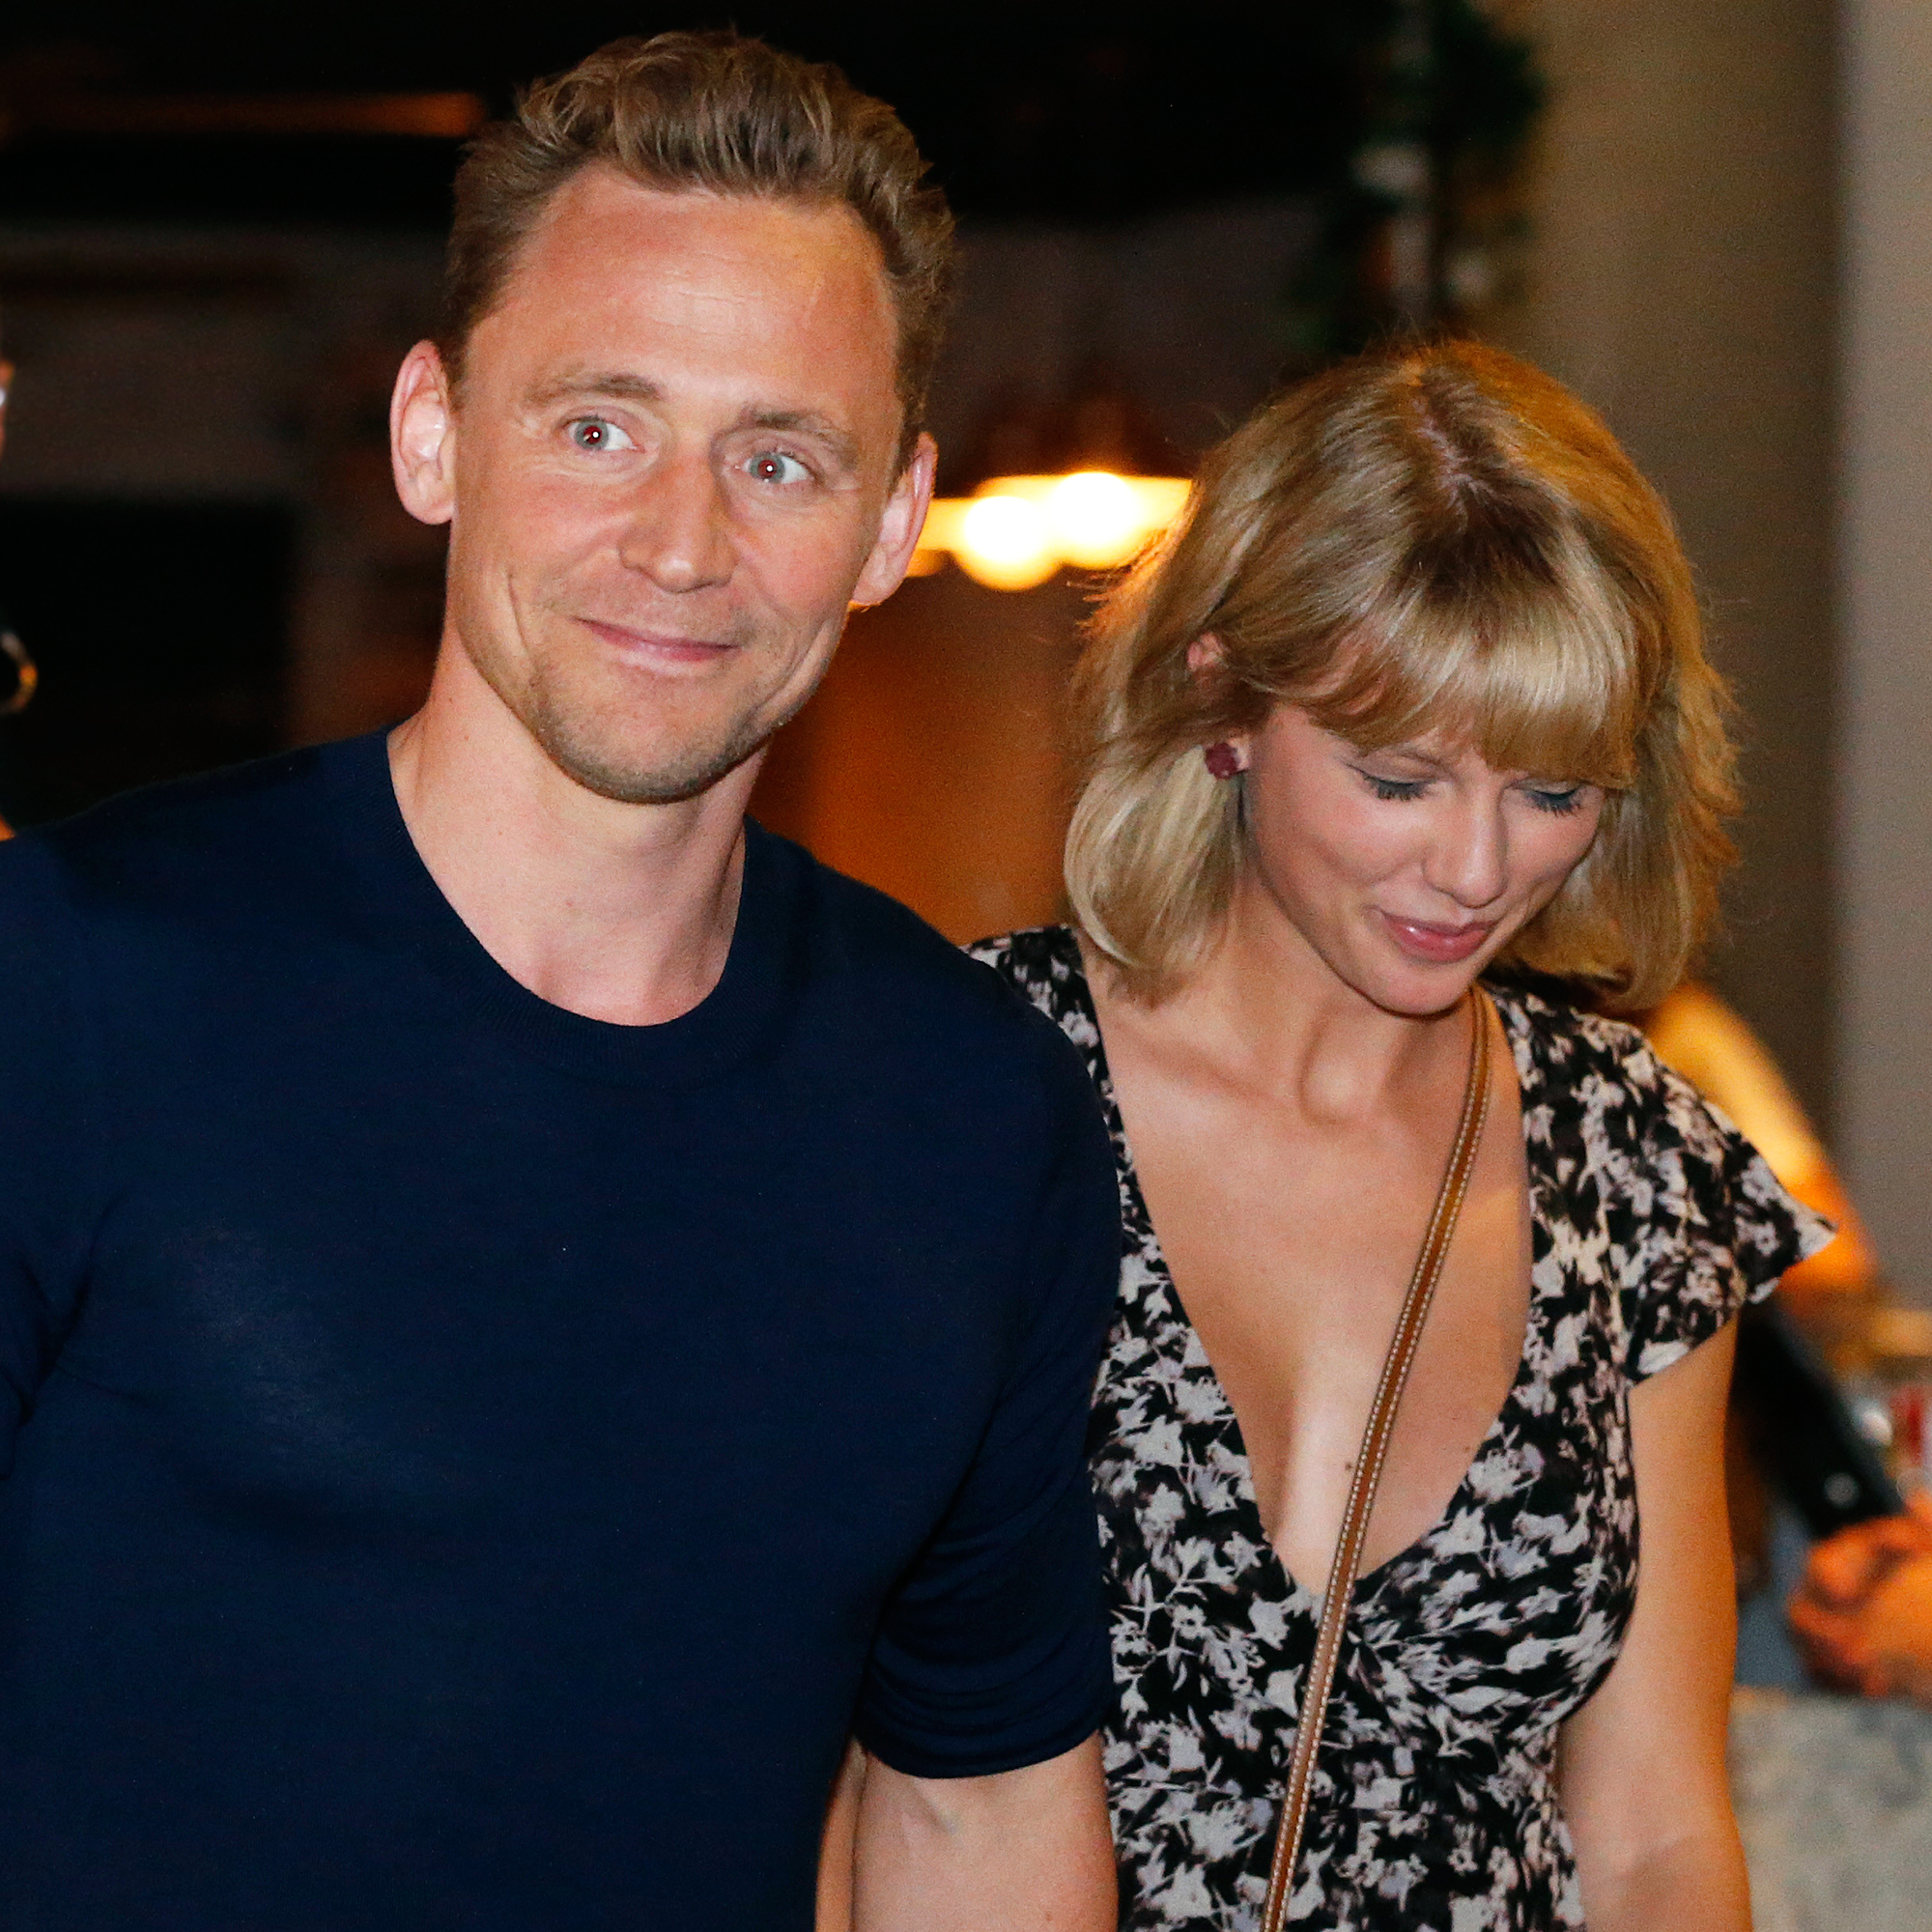 """Taylor Swift's Dating History - Two weeks after her split from Harris, Swift was spotted kissing the Thor actor in Rhode Island. """"They were all over each other — hugging and kissing — even though there were 20 people coming and going on the beach,"""" an eyewitness told The Sun in June 2016."""